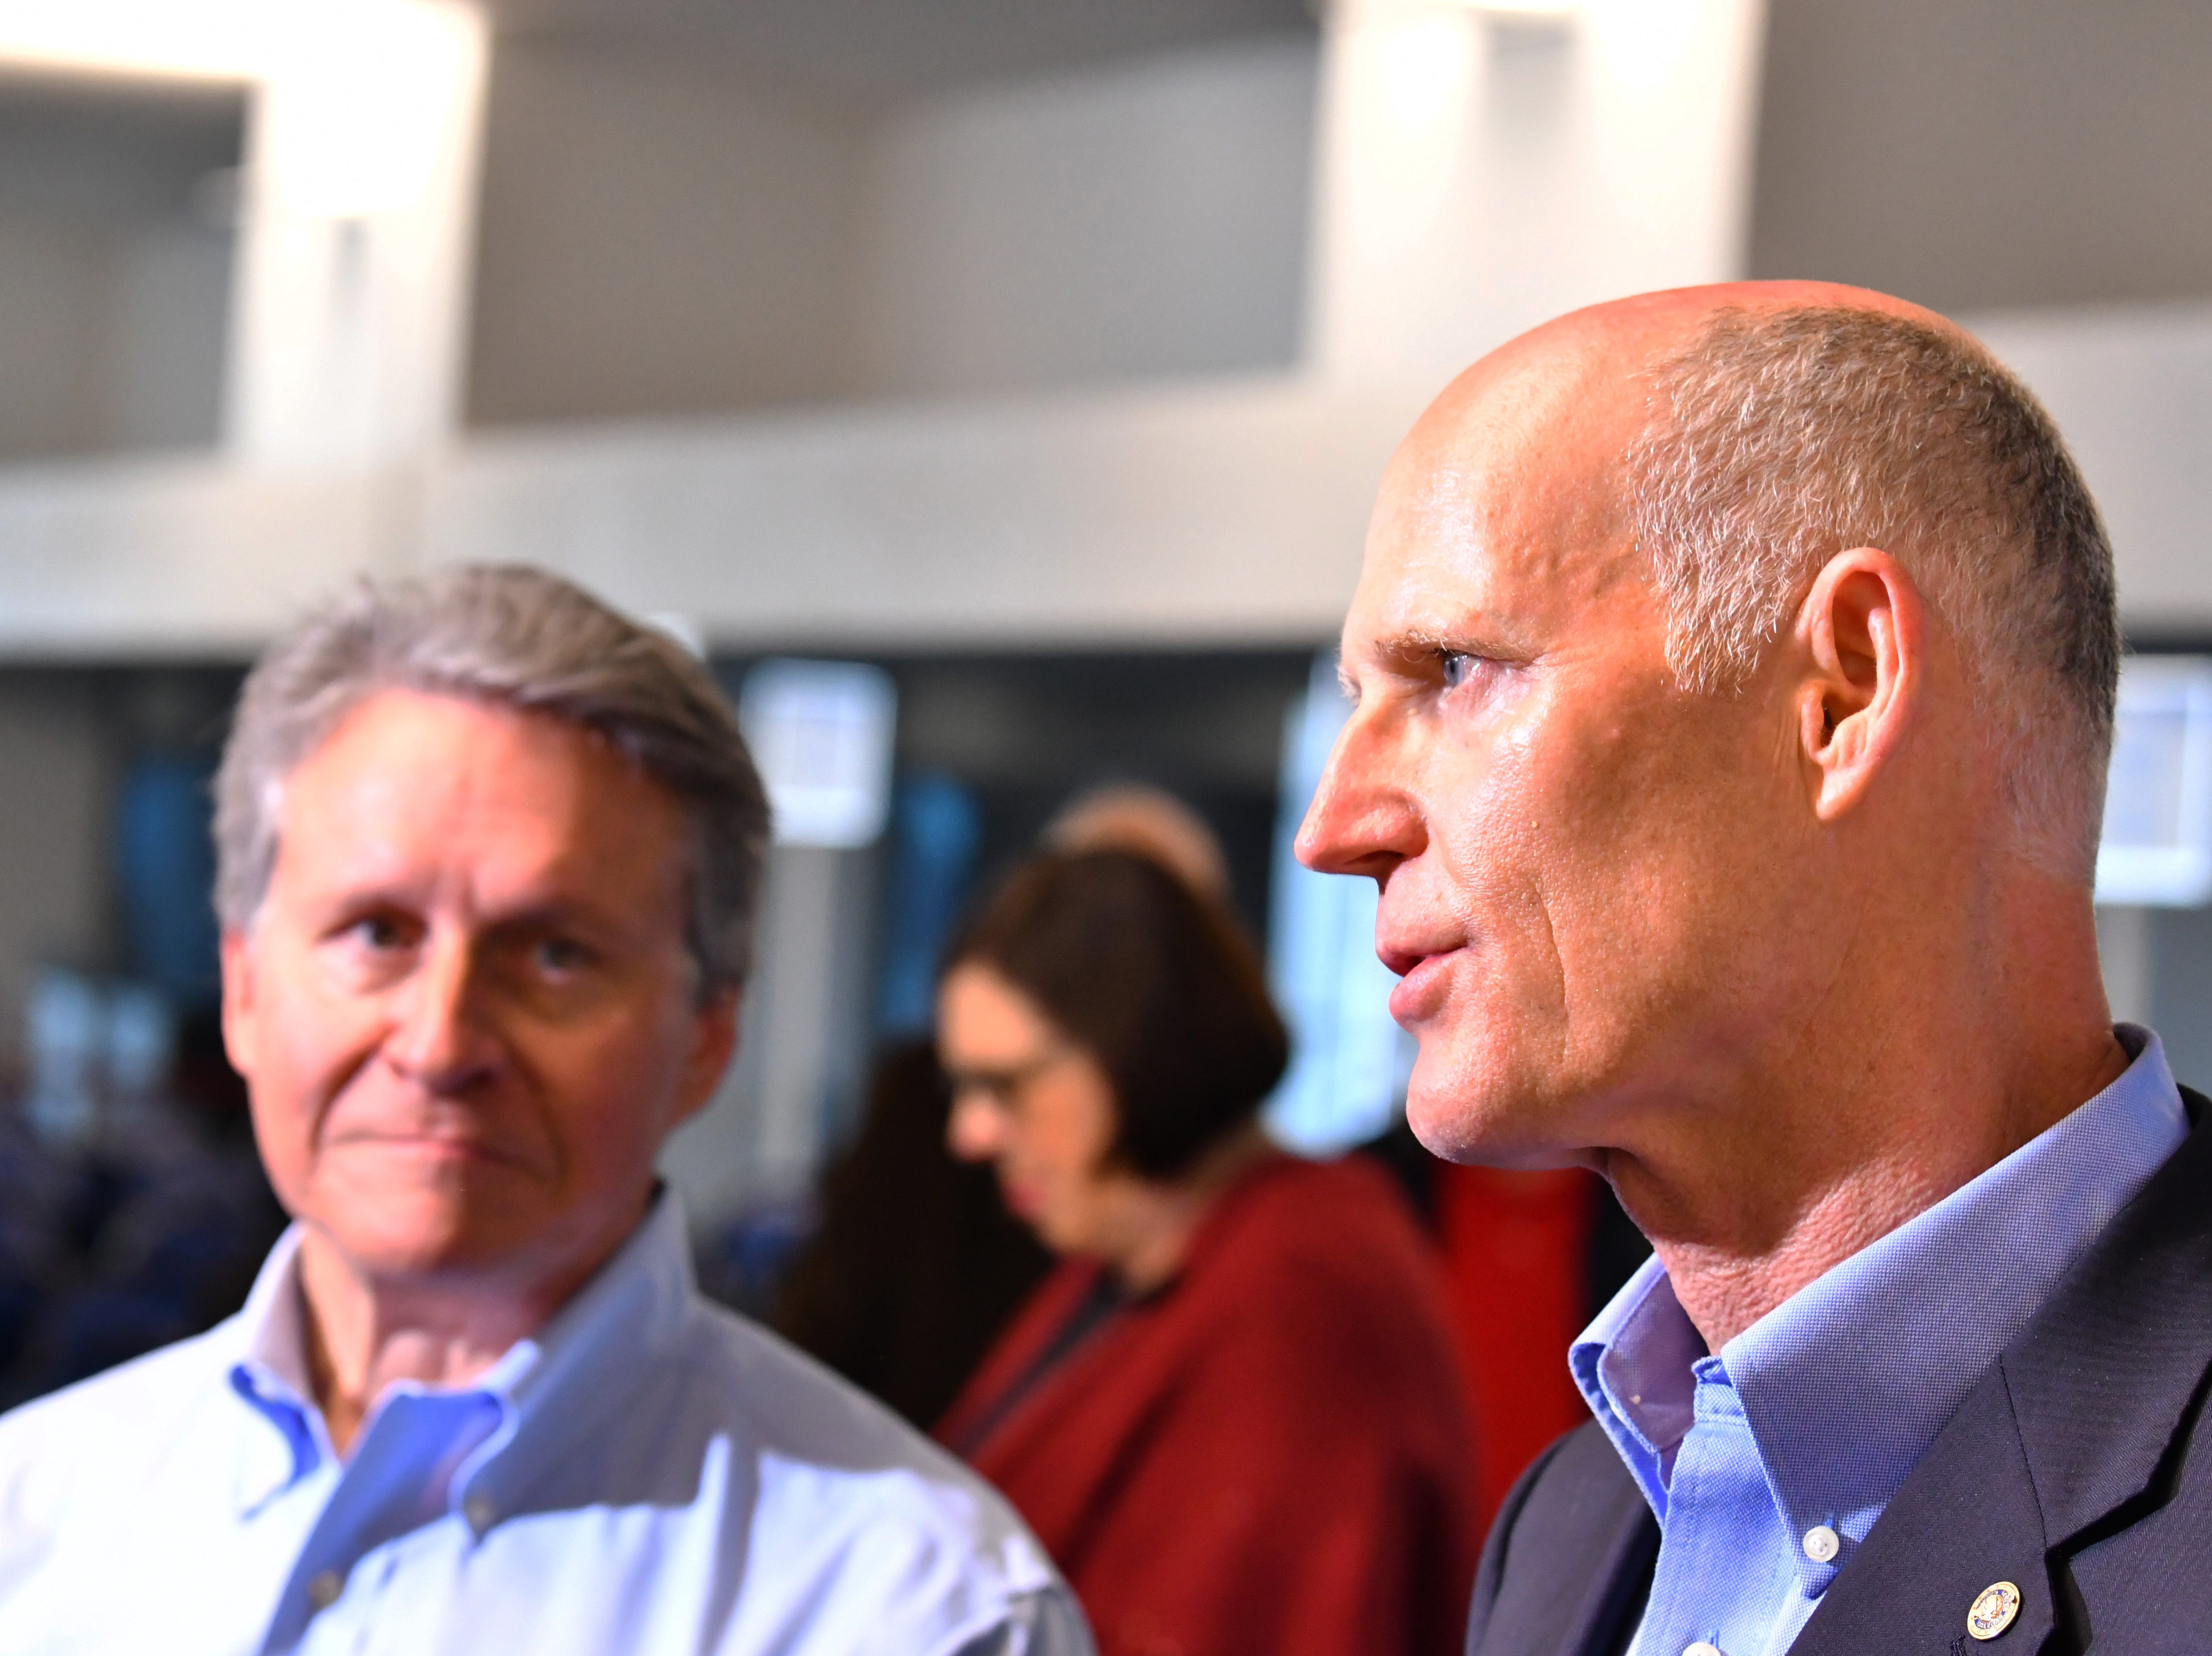 Sen. Rick Scott held a press conference at Terminal 5 Tuesday morning at Port Canaveral, pledging to work for $140 million in the budget for Florida ports. Senator Scott and port CEO John Murray talked to the media after the official press conference.